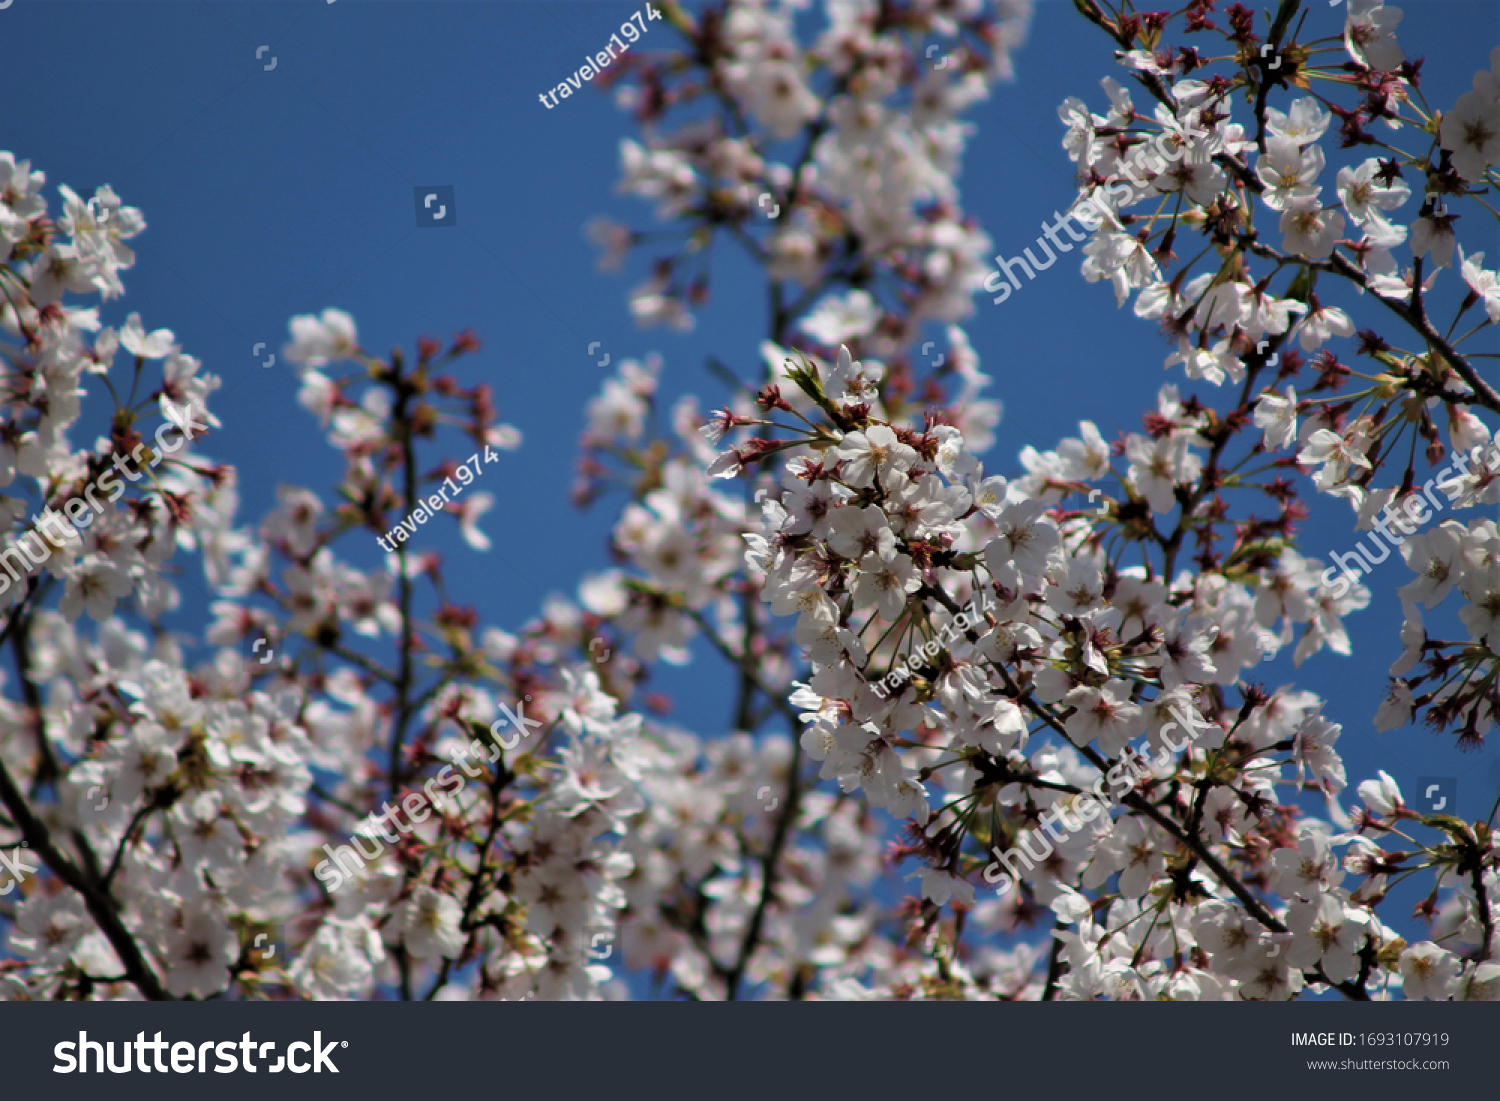 stock-photo-japanese-cherry-blossoms-in-